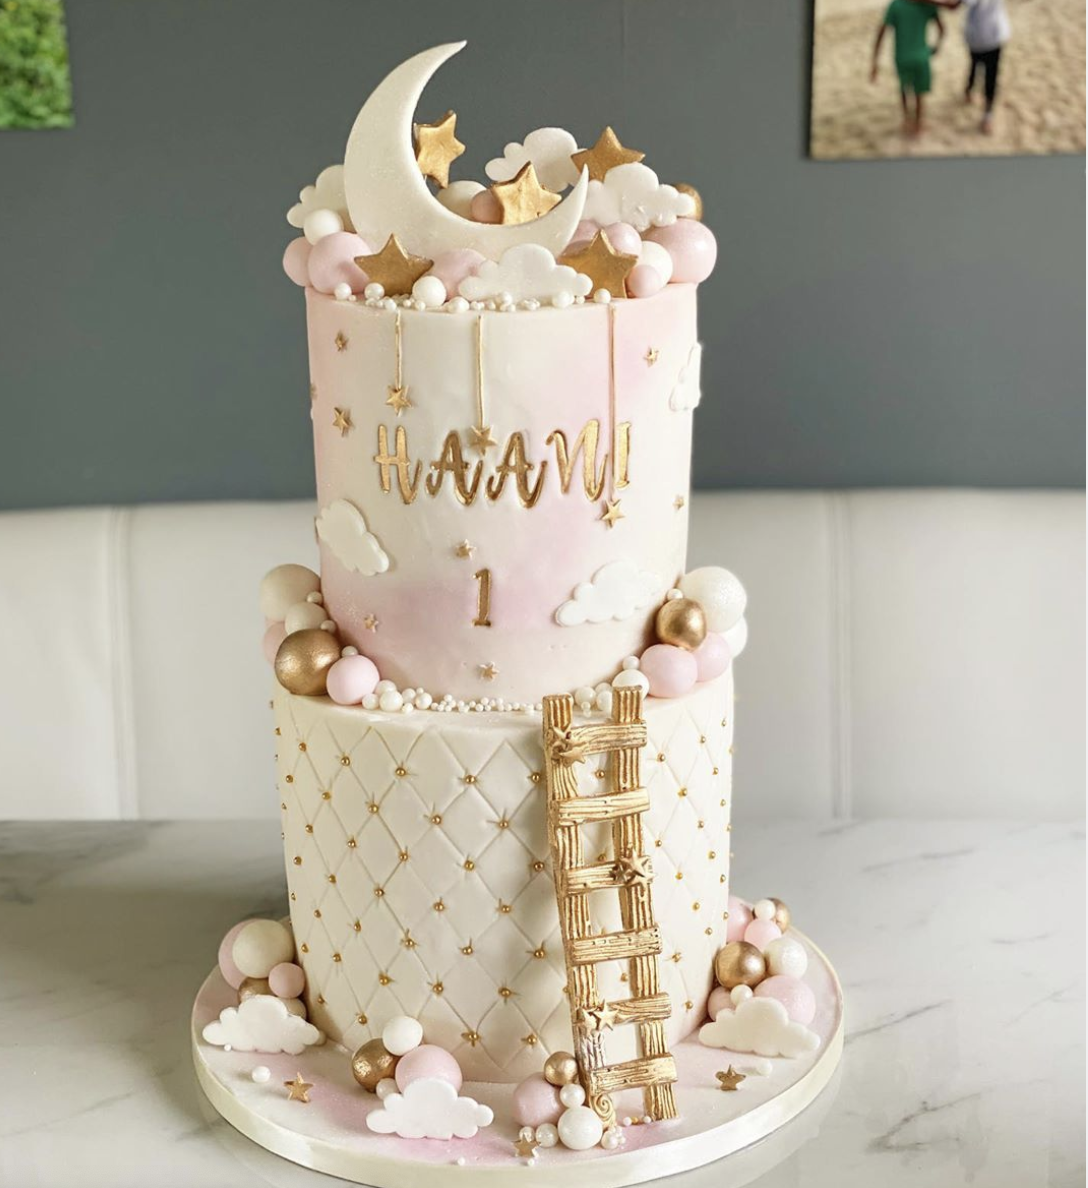 15 Adorable First Birthday Cake Ideas That You Will Love Find Your Cake Inspiration